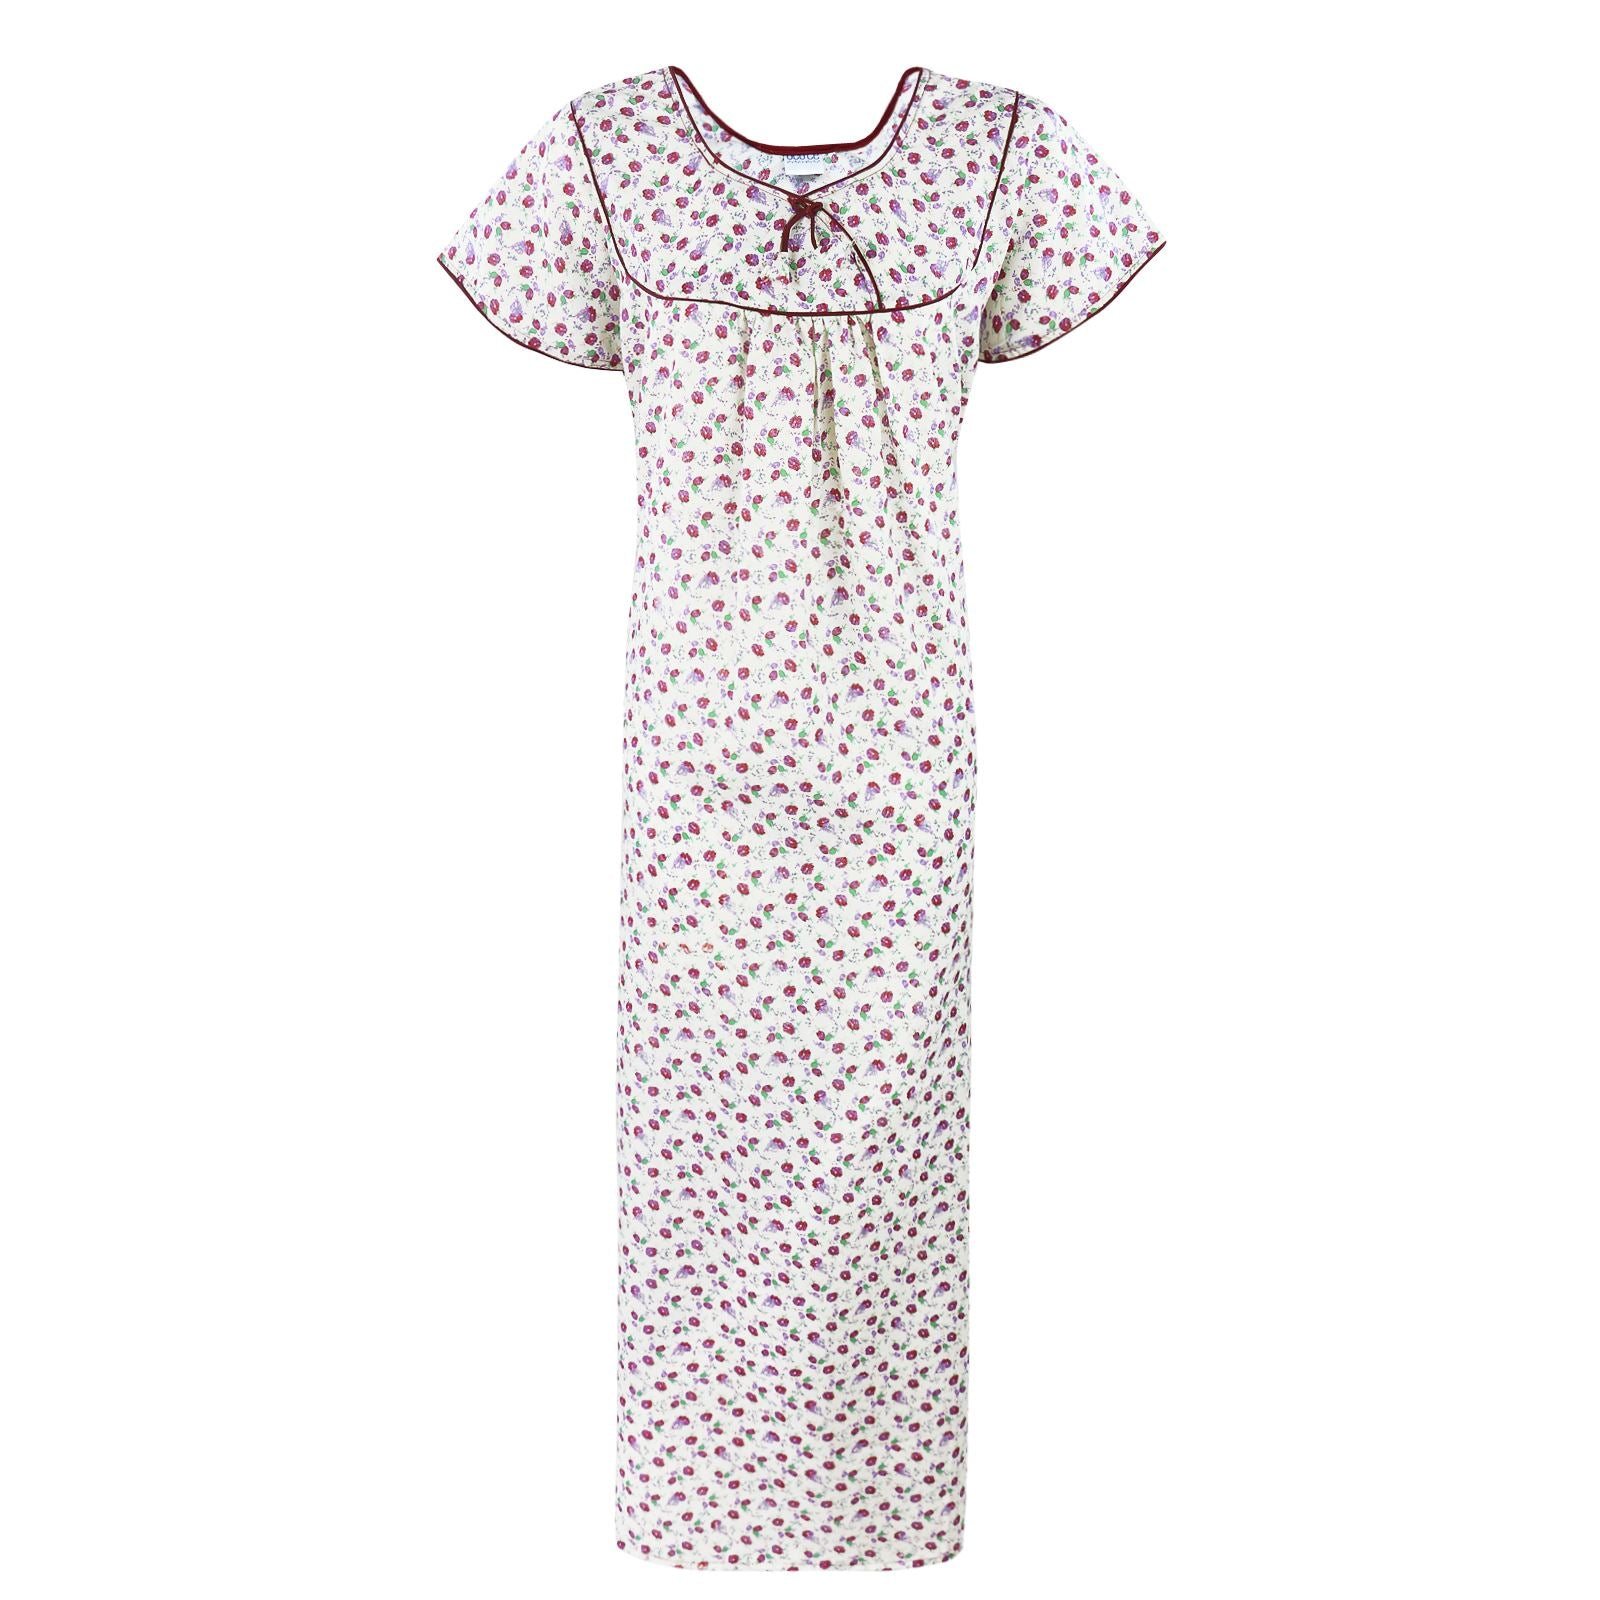 Cotton Printed Scoop Neck Long Nighty [colour]- Hautie UK, #Nightfashion | #Underfashion